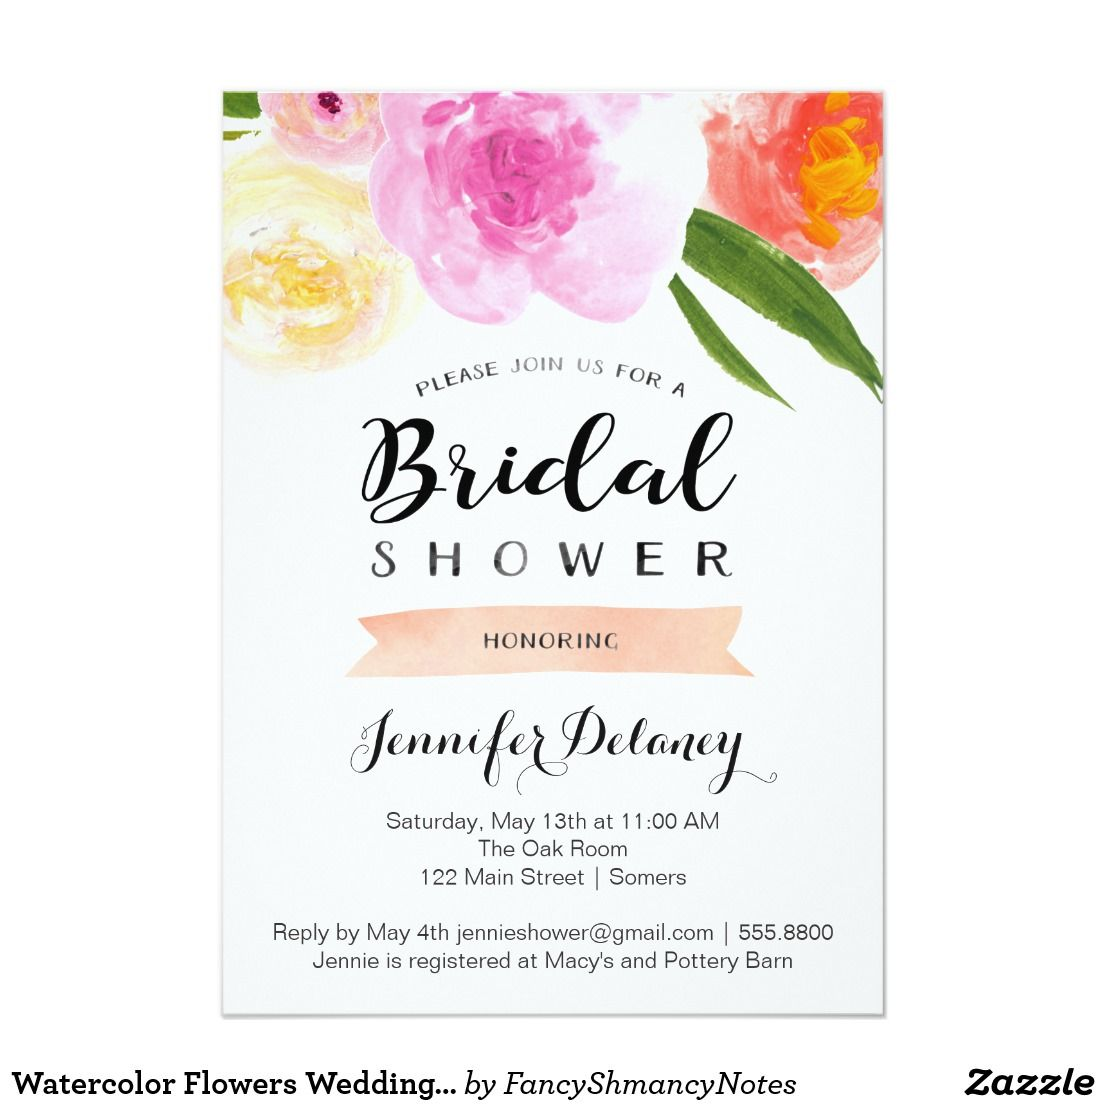 Watercolor Flowers Wedding Shower Invitation | Shower invitations ...